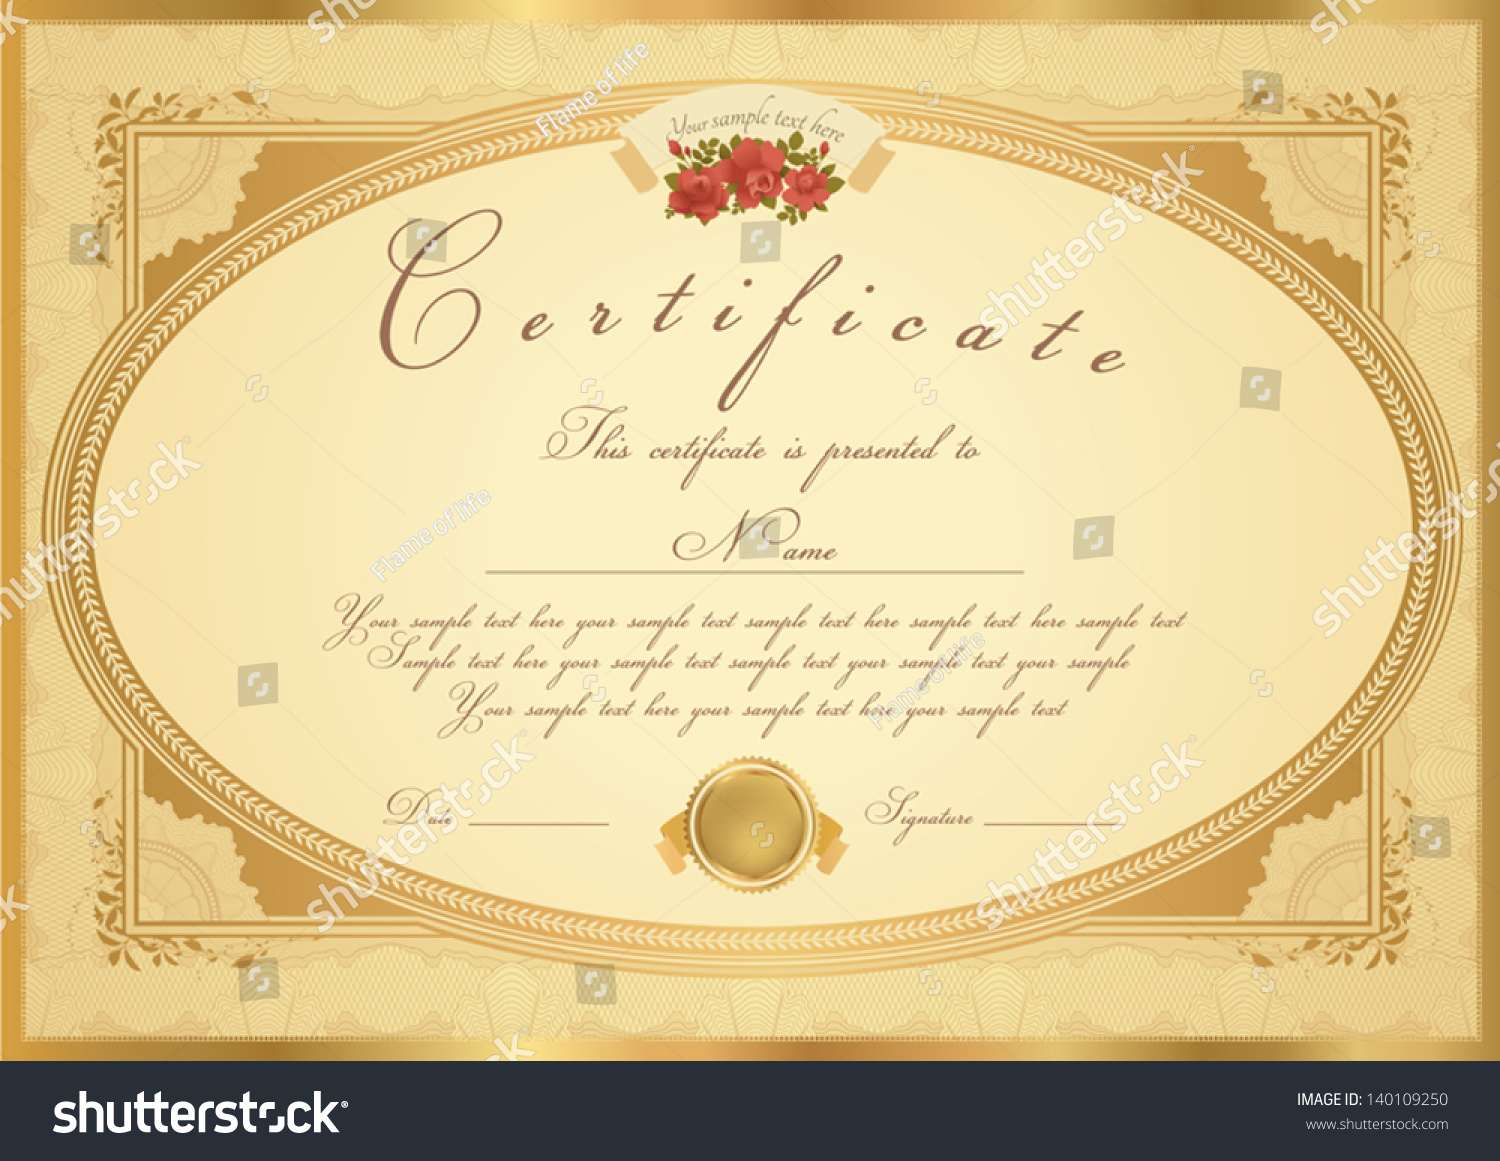 Certificate / Diploma Of Completion (Design Template / Sample Background)  With Flower Pattern (